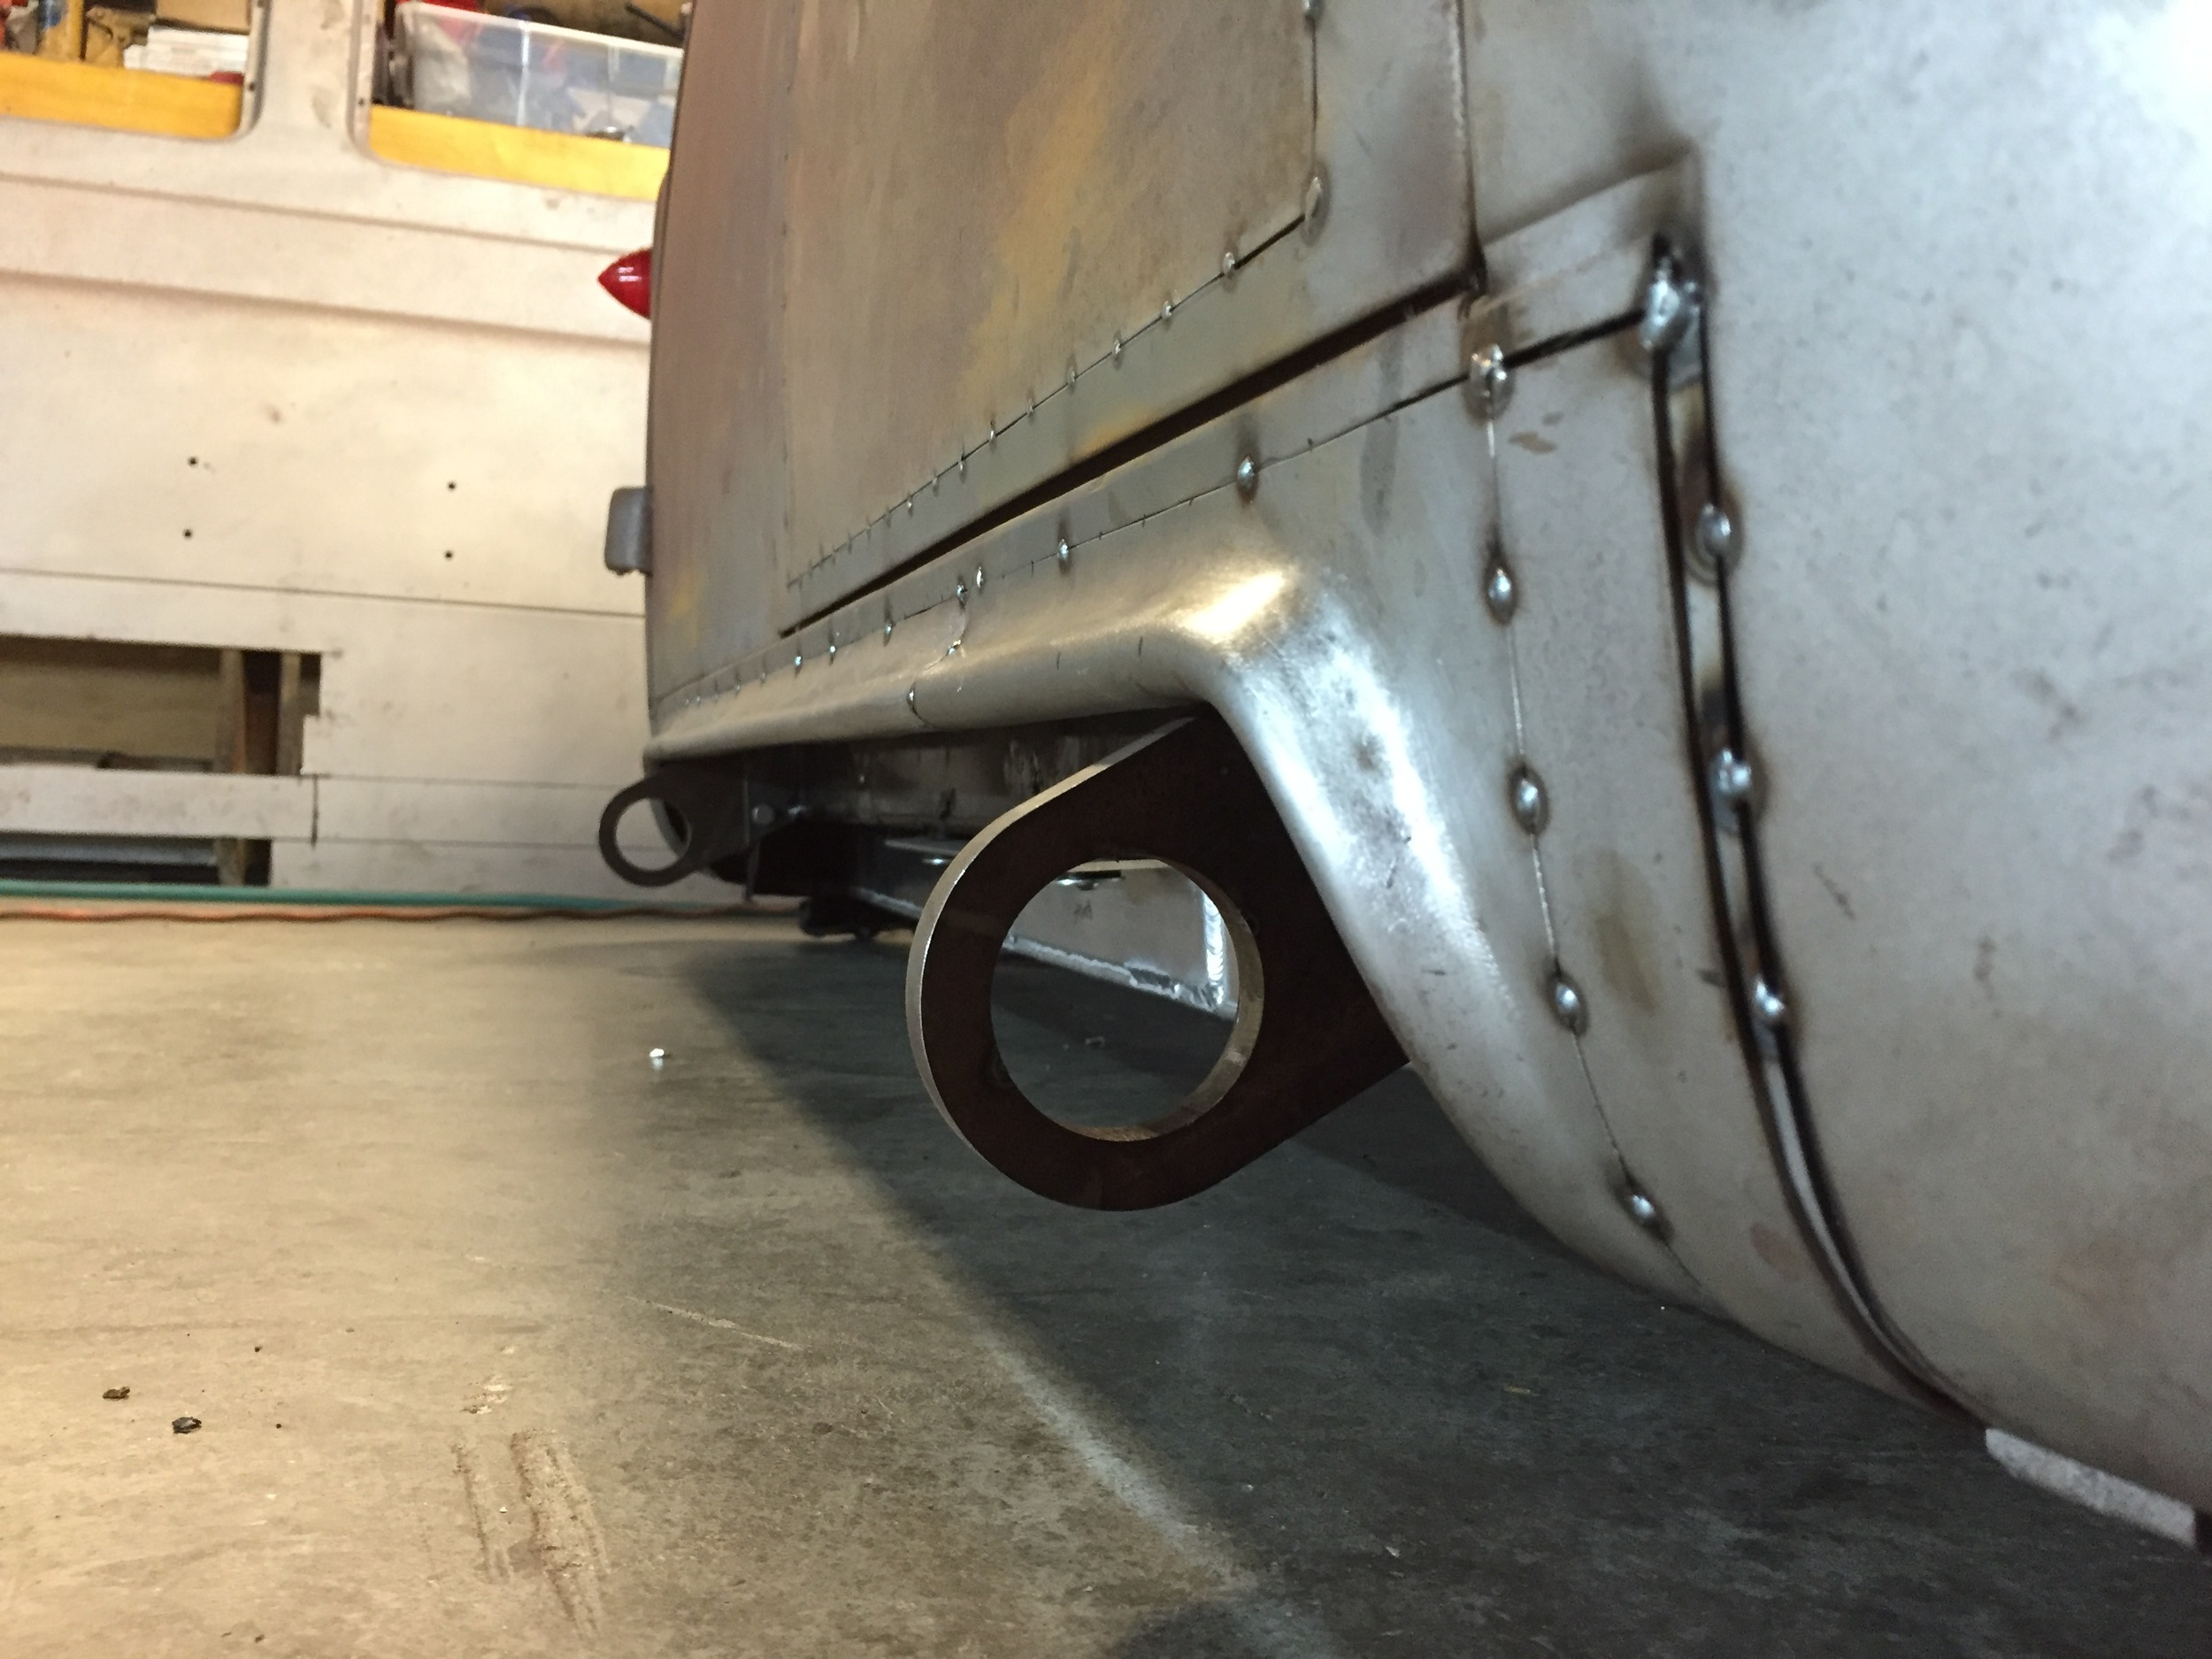 Makes the tow hooks look exceptional too!